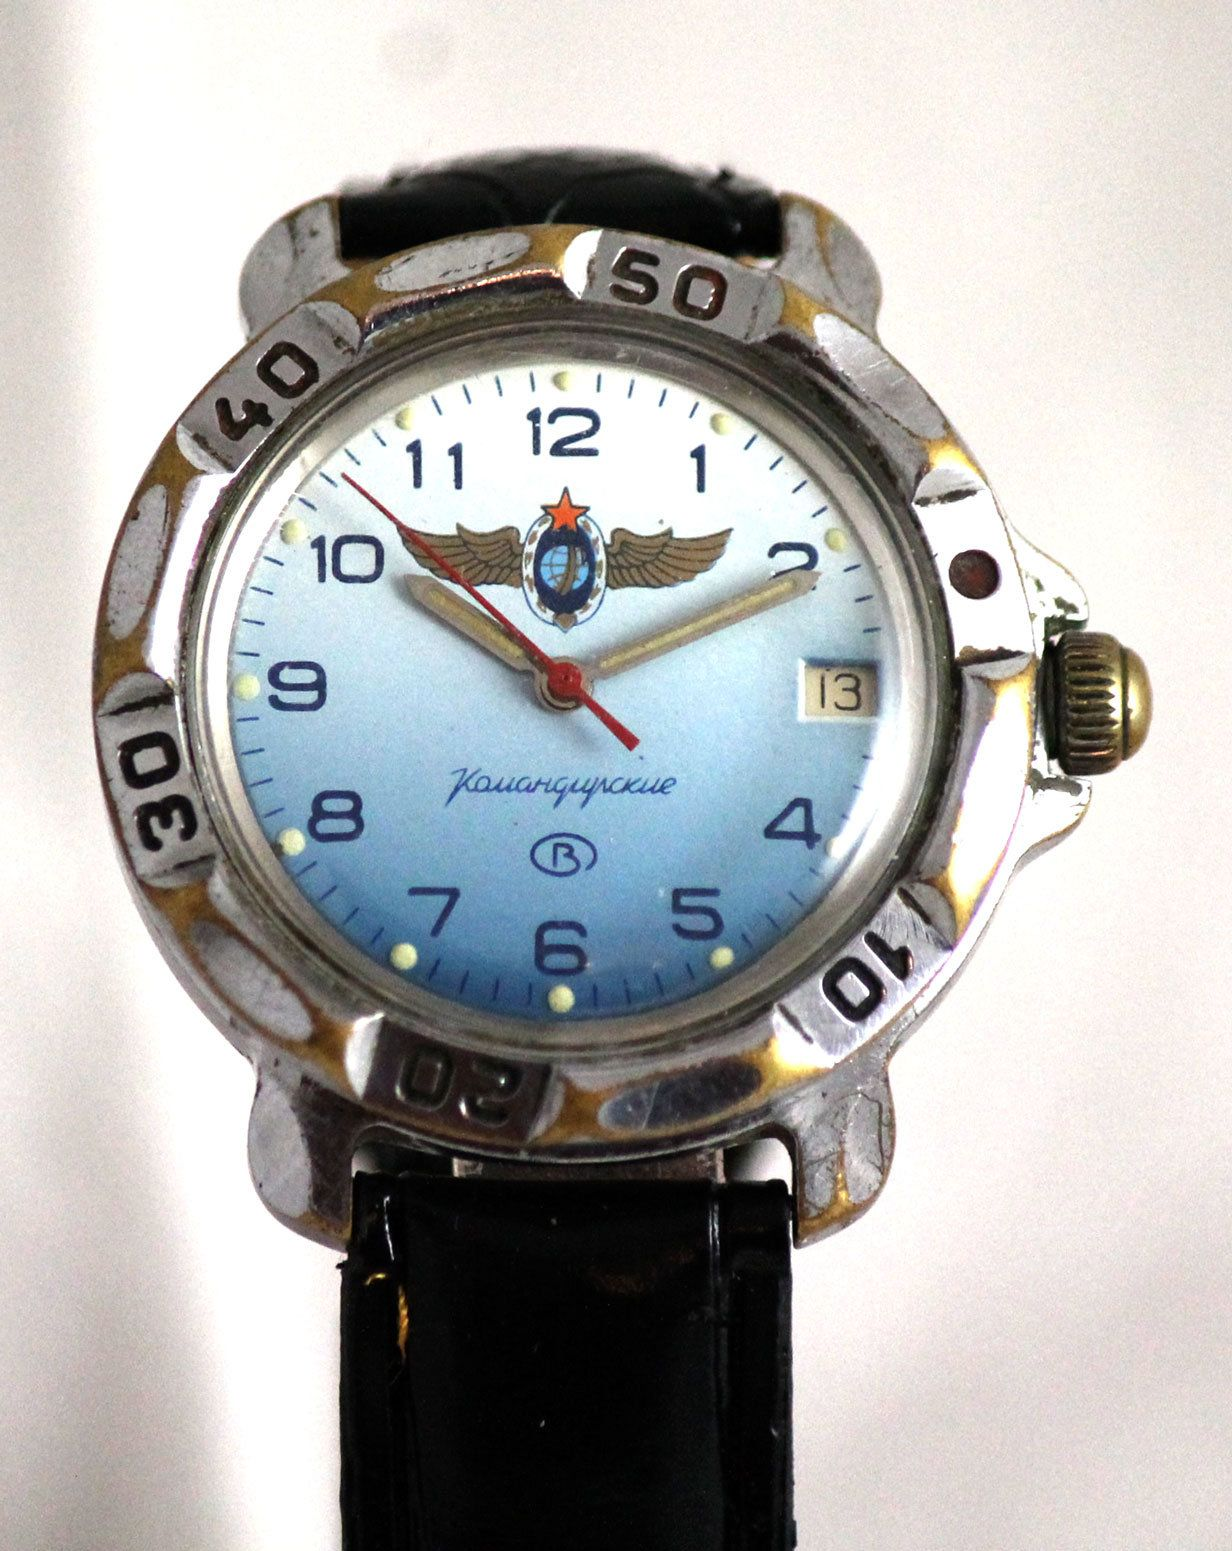 Watch Service Near Me : watch, service, Heuer, Service, Review, Services, Status.velocity.uwaterloo.ca